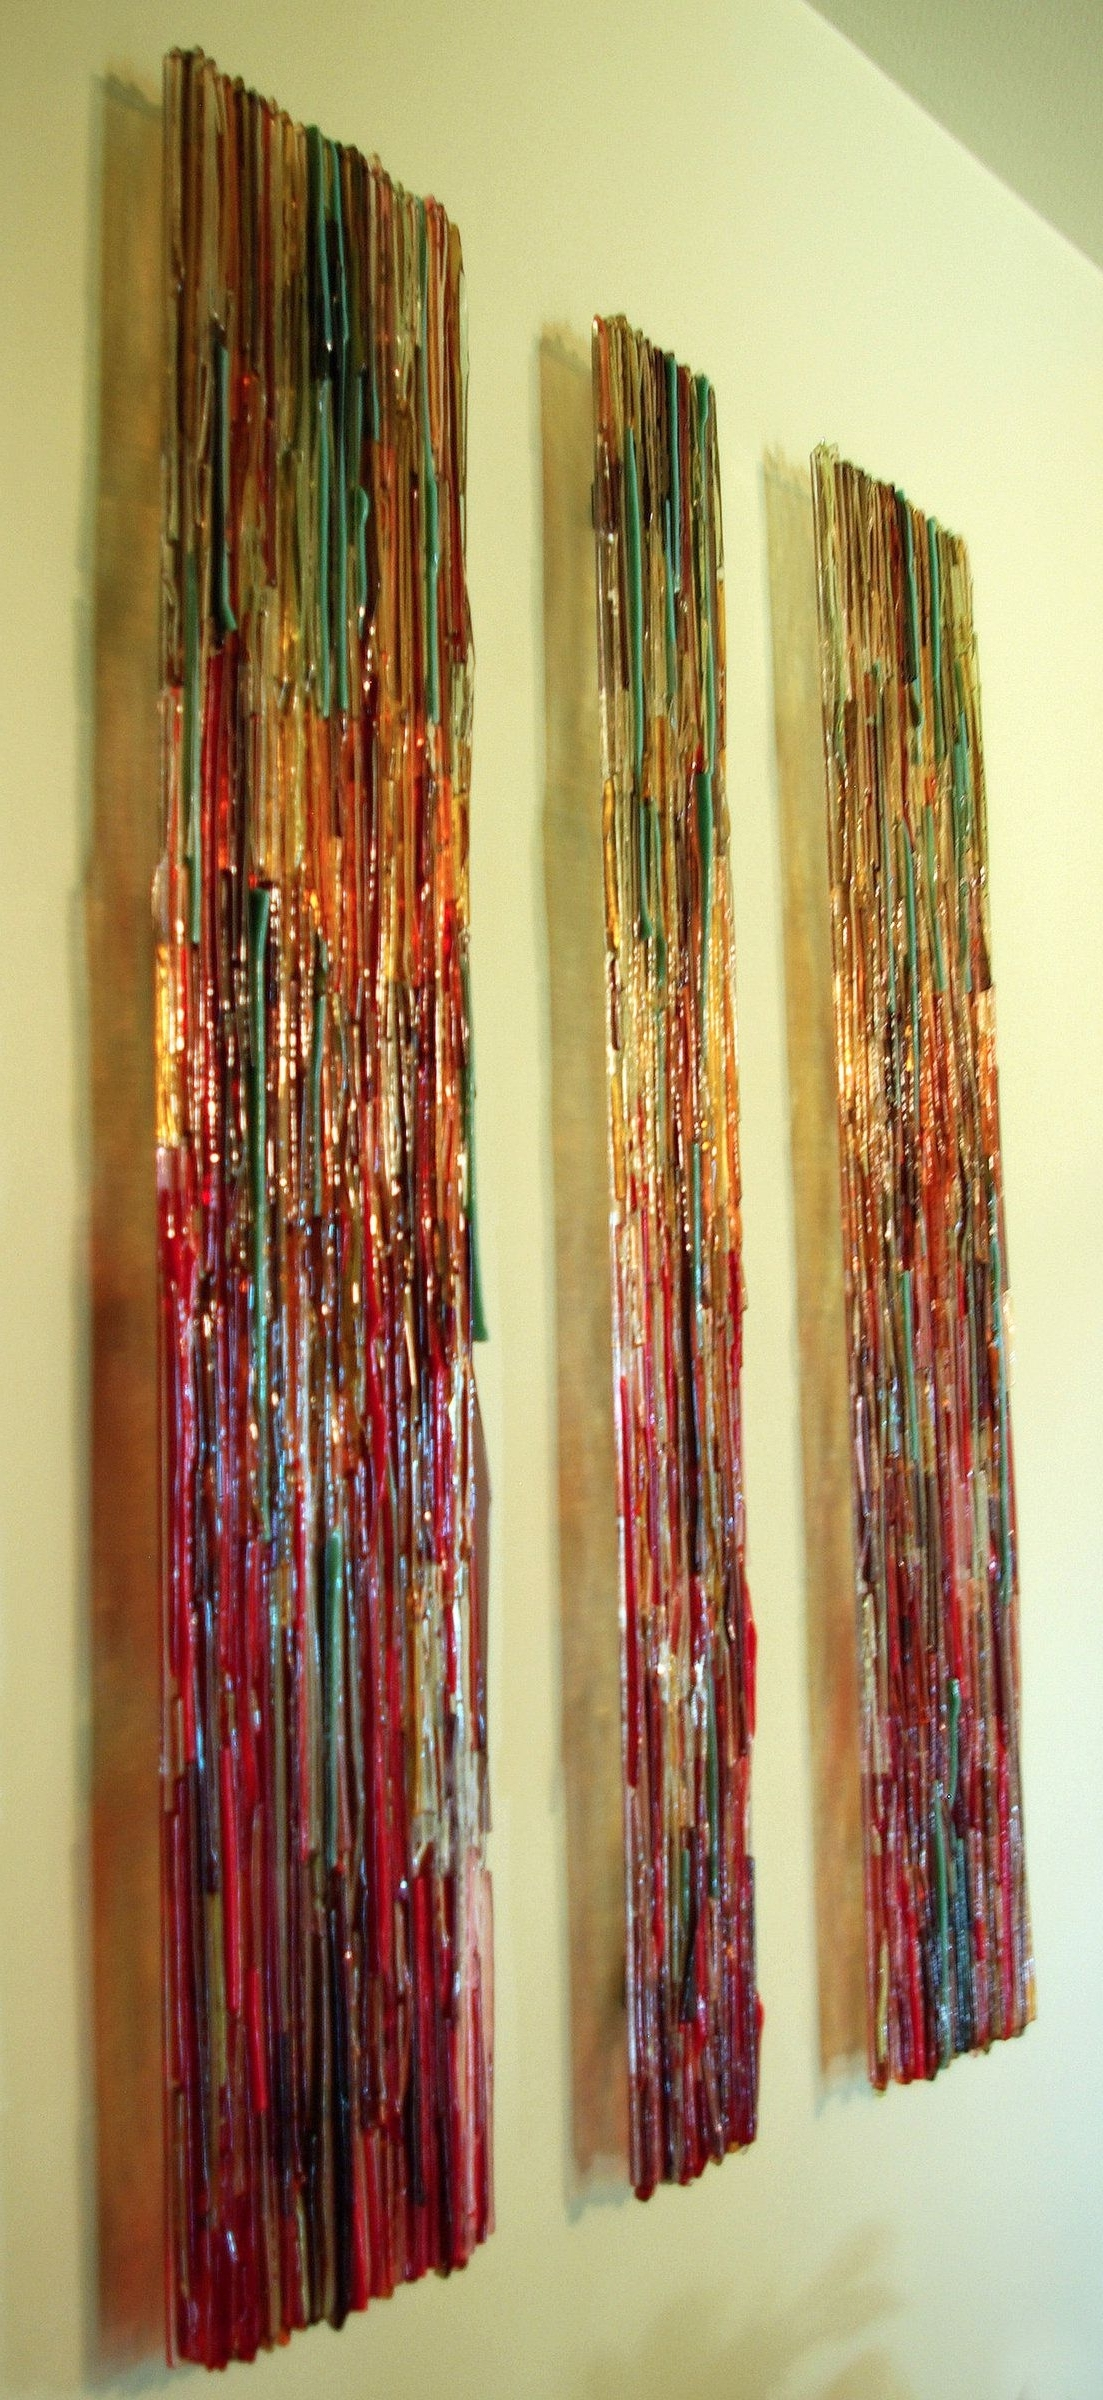 Transpire Wall Panels: Sarinda Jones: Art Glass Wall Art – Artful Regarding Widely Used Fused Glass Wall Art For Sale (View 14 of 15)